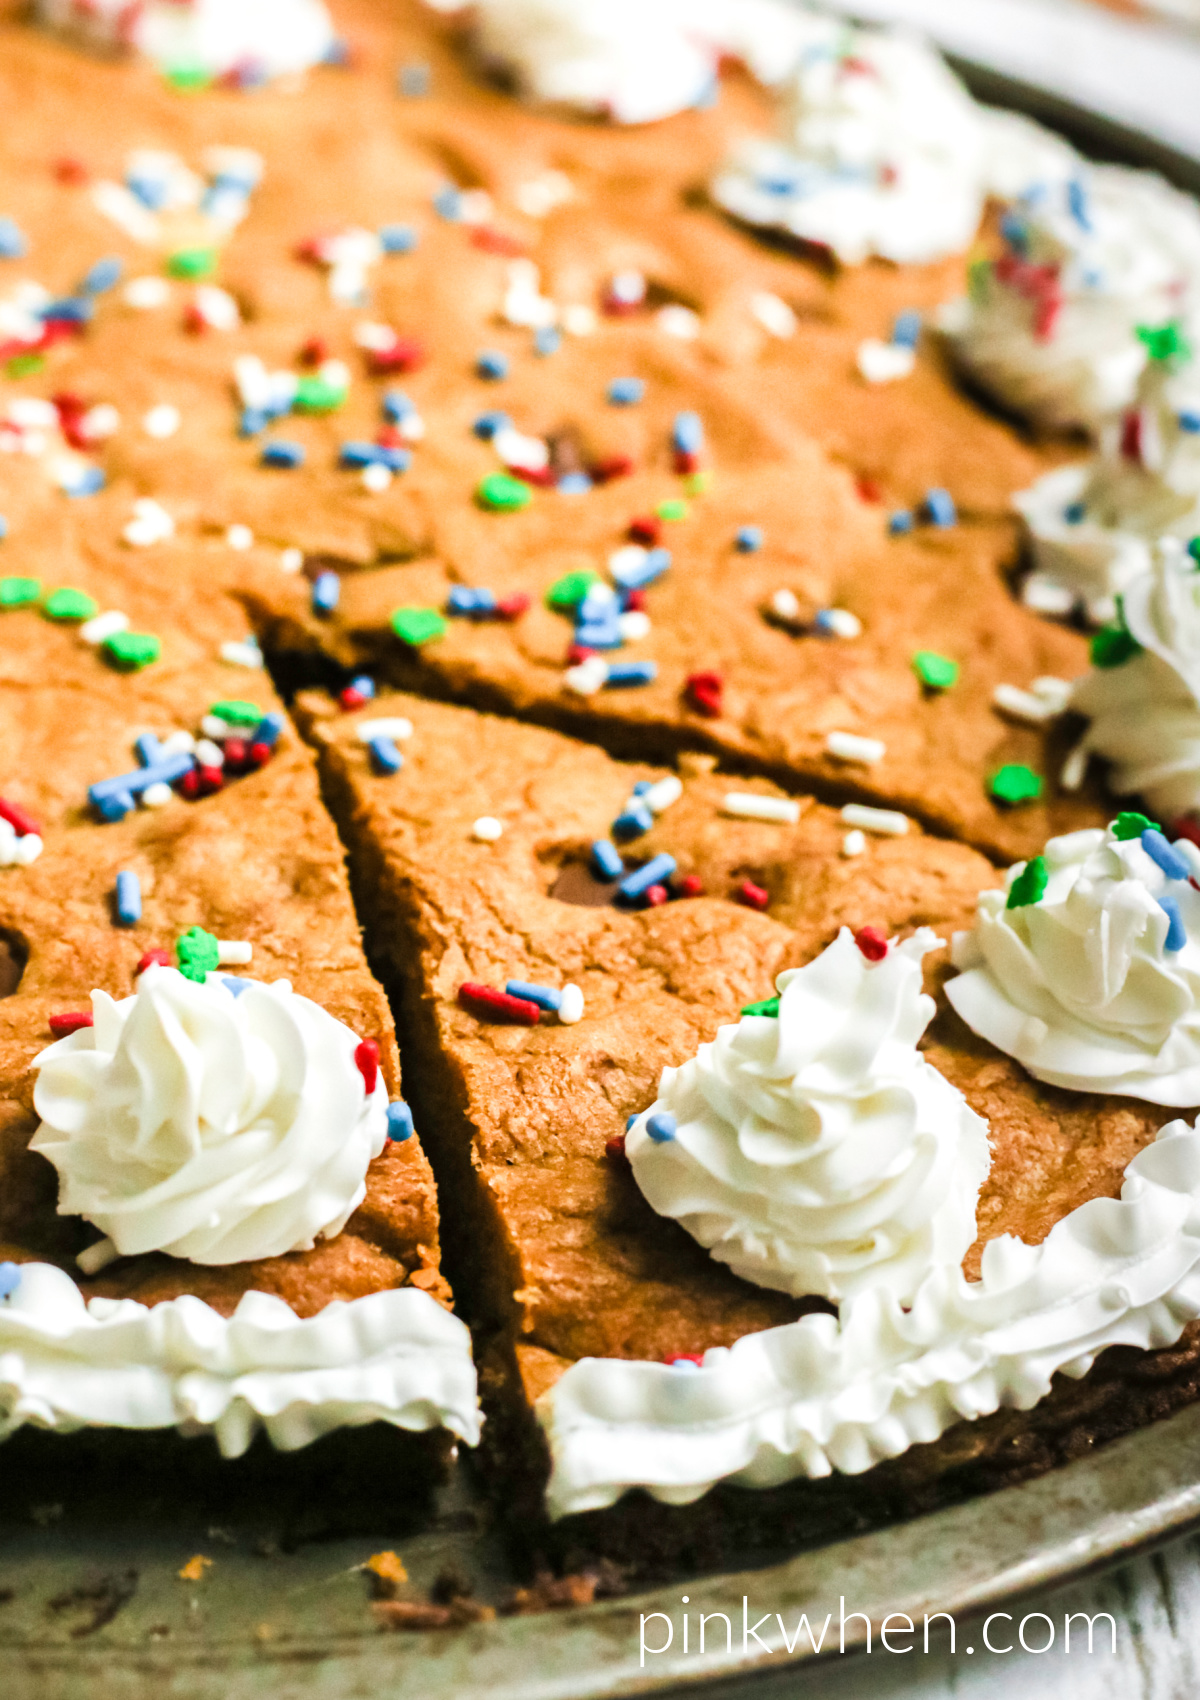 Homemade chocolate chip cookie cake on a pan and topped with frosting and sprinkles and ready to serve.